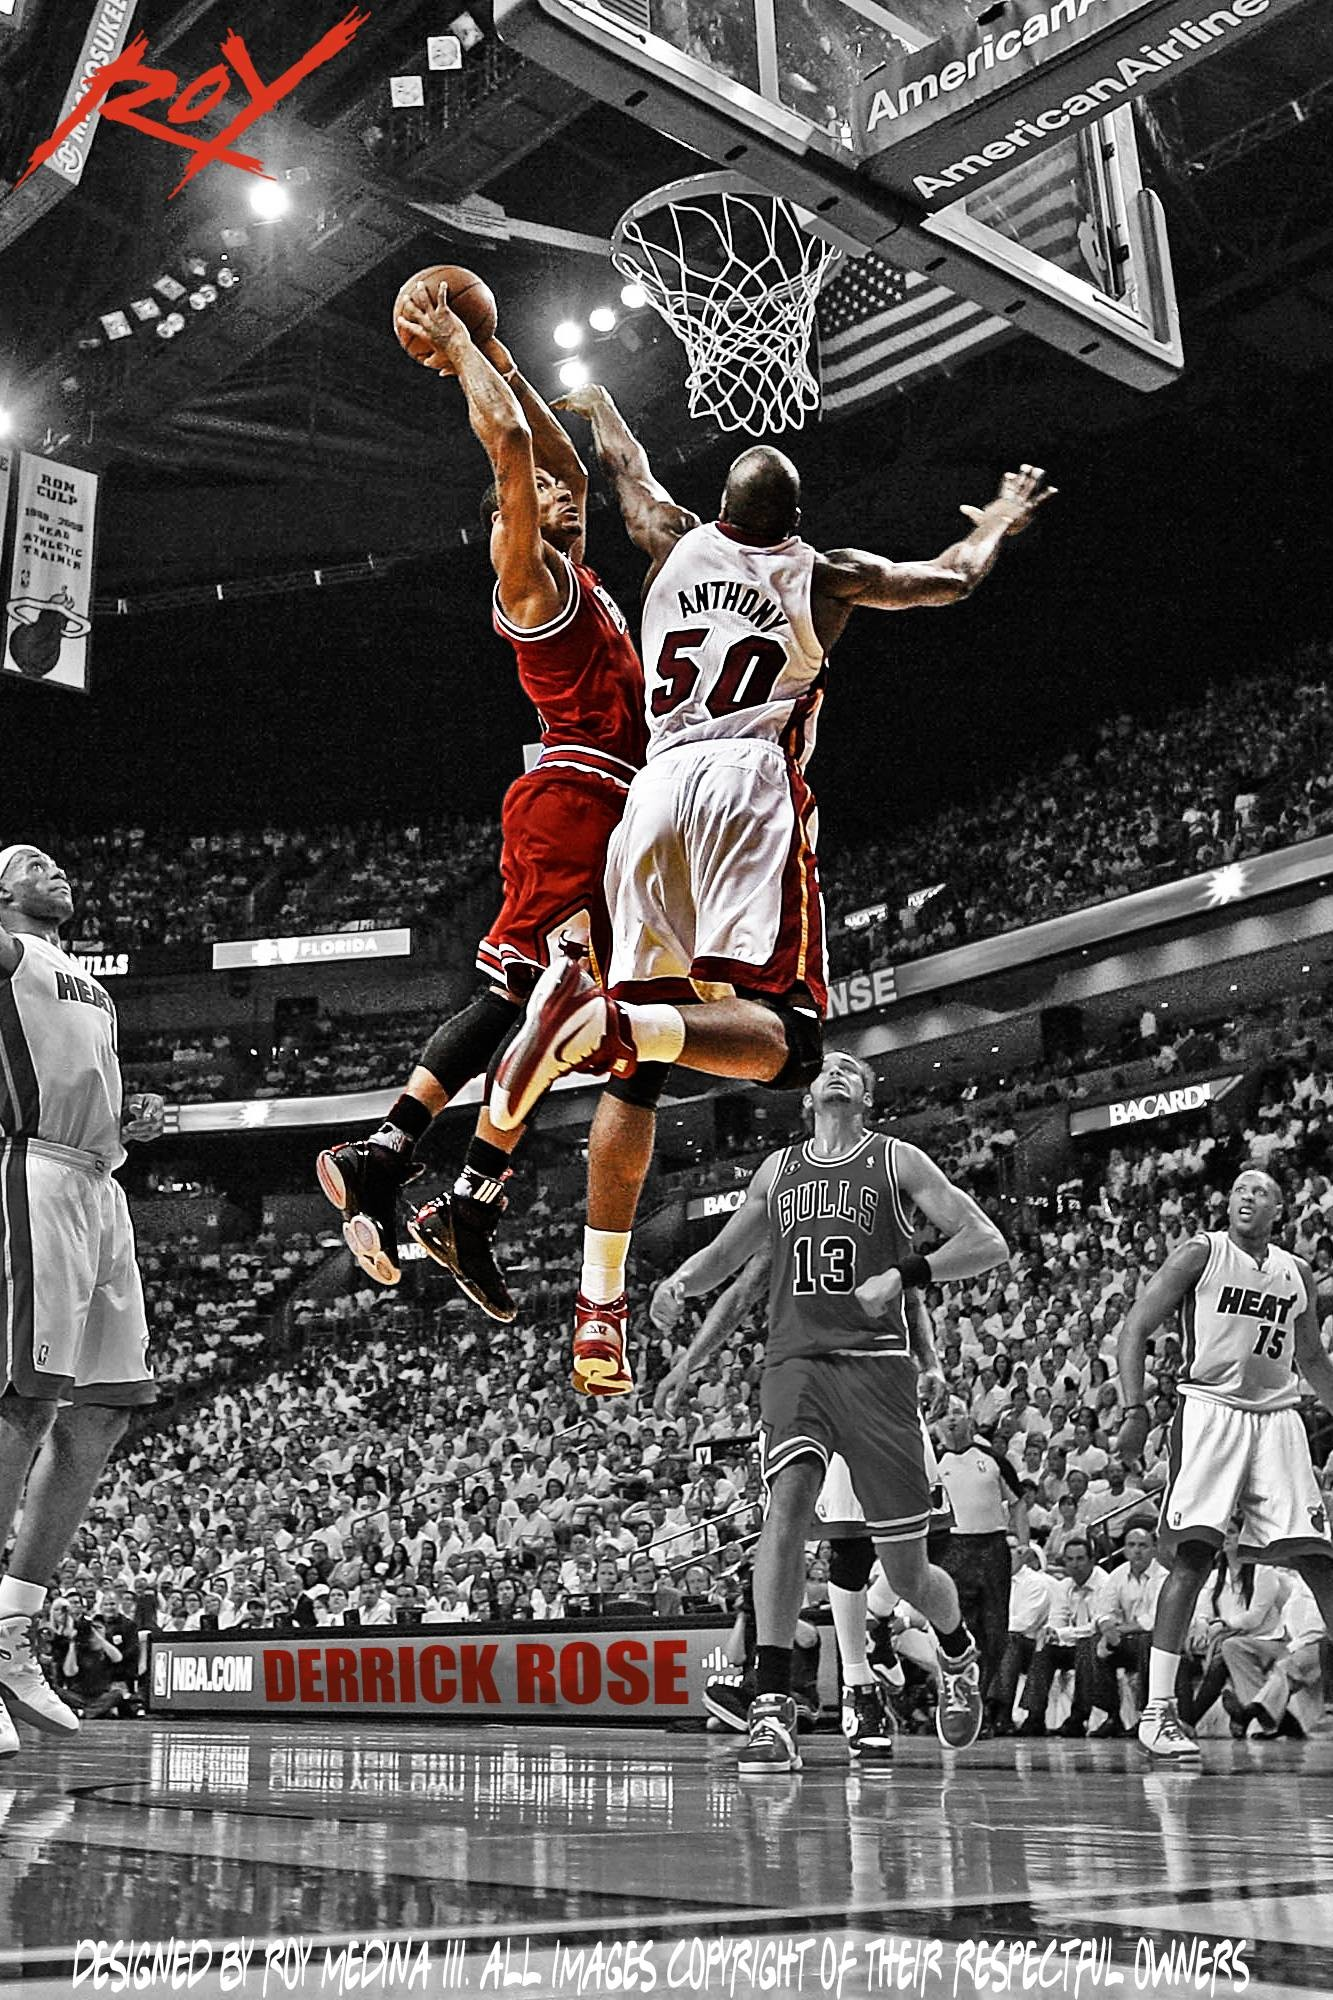 Lebron dunk wallpaper 2018 71 images - Derrick rose cavs wallpaper ...